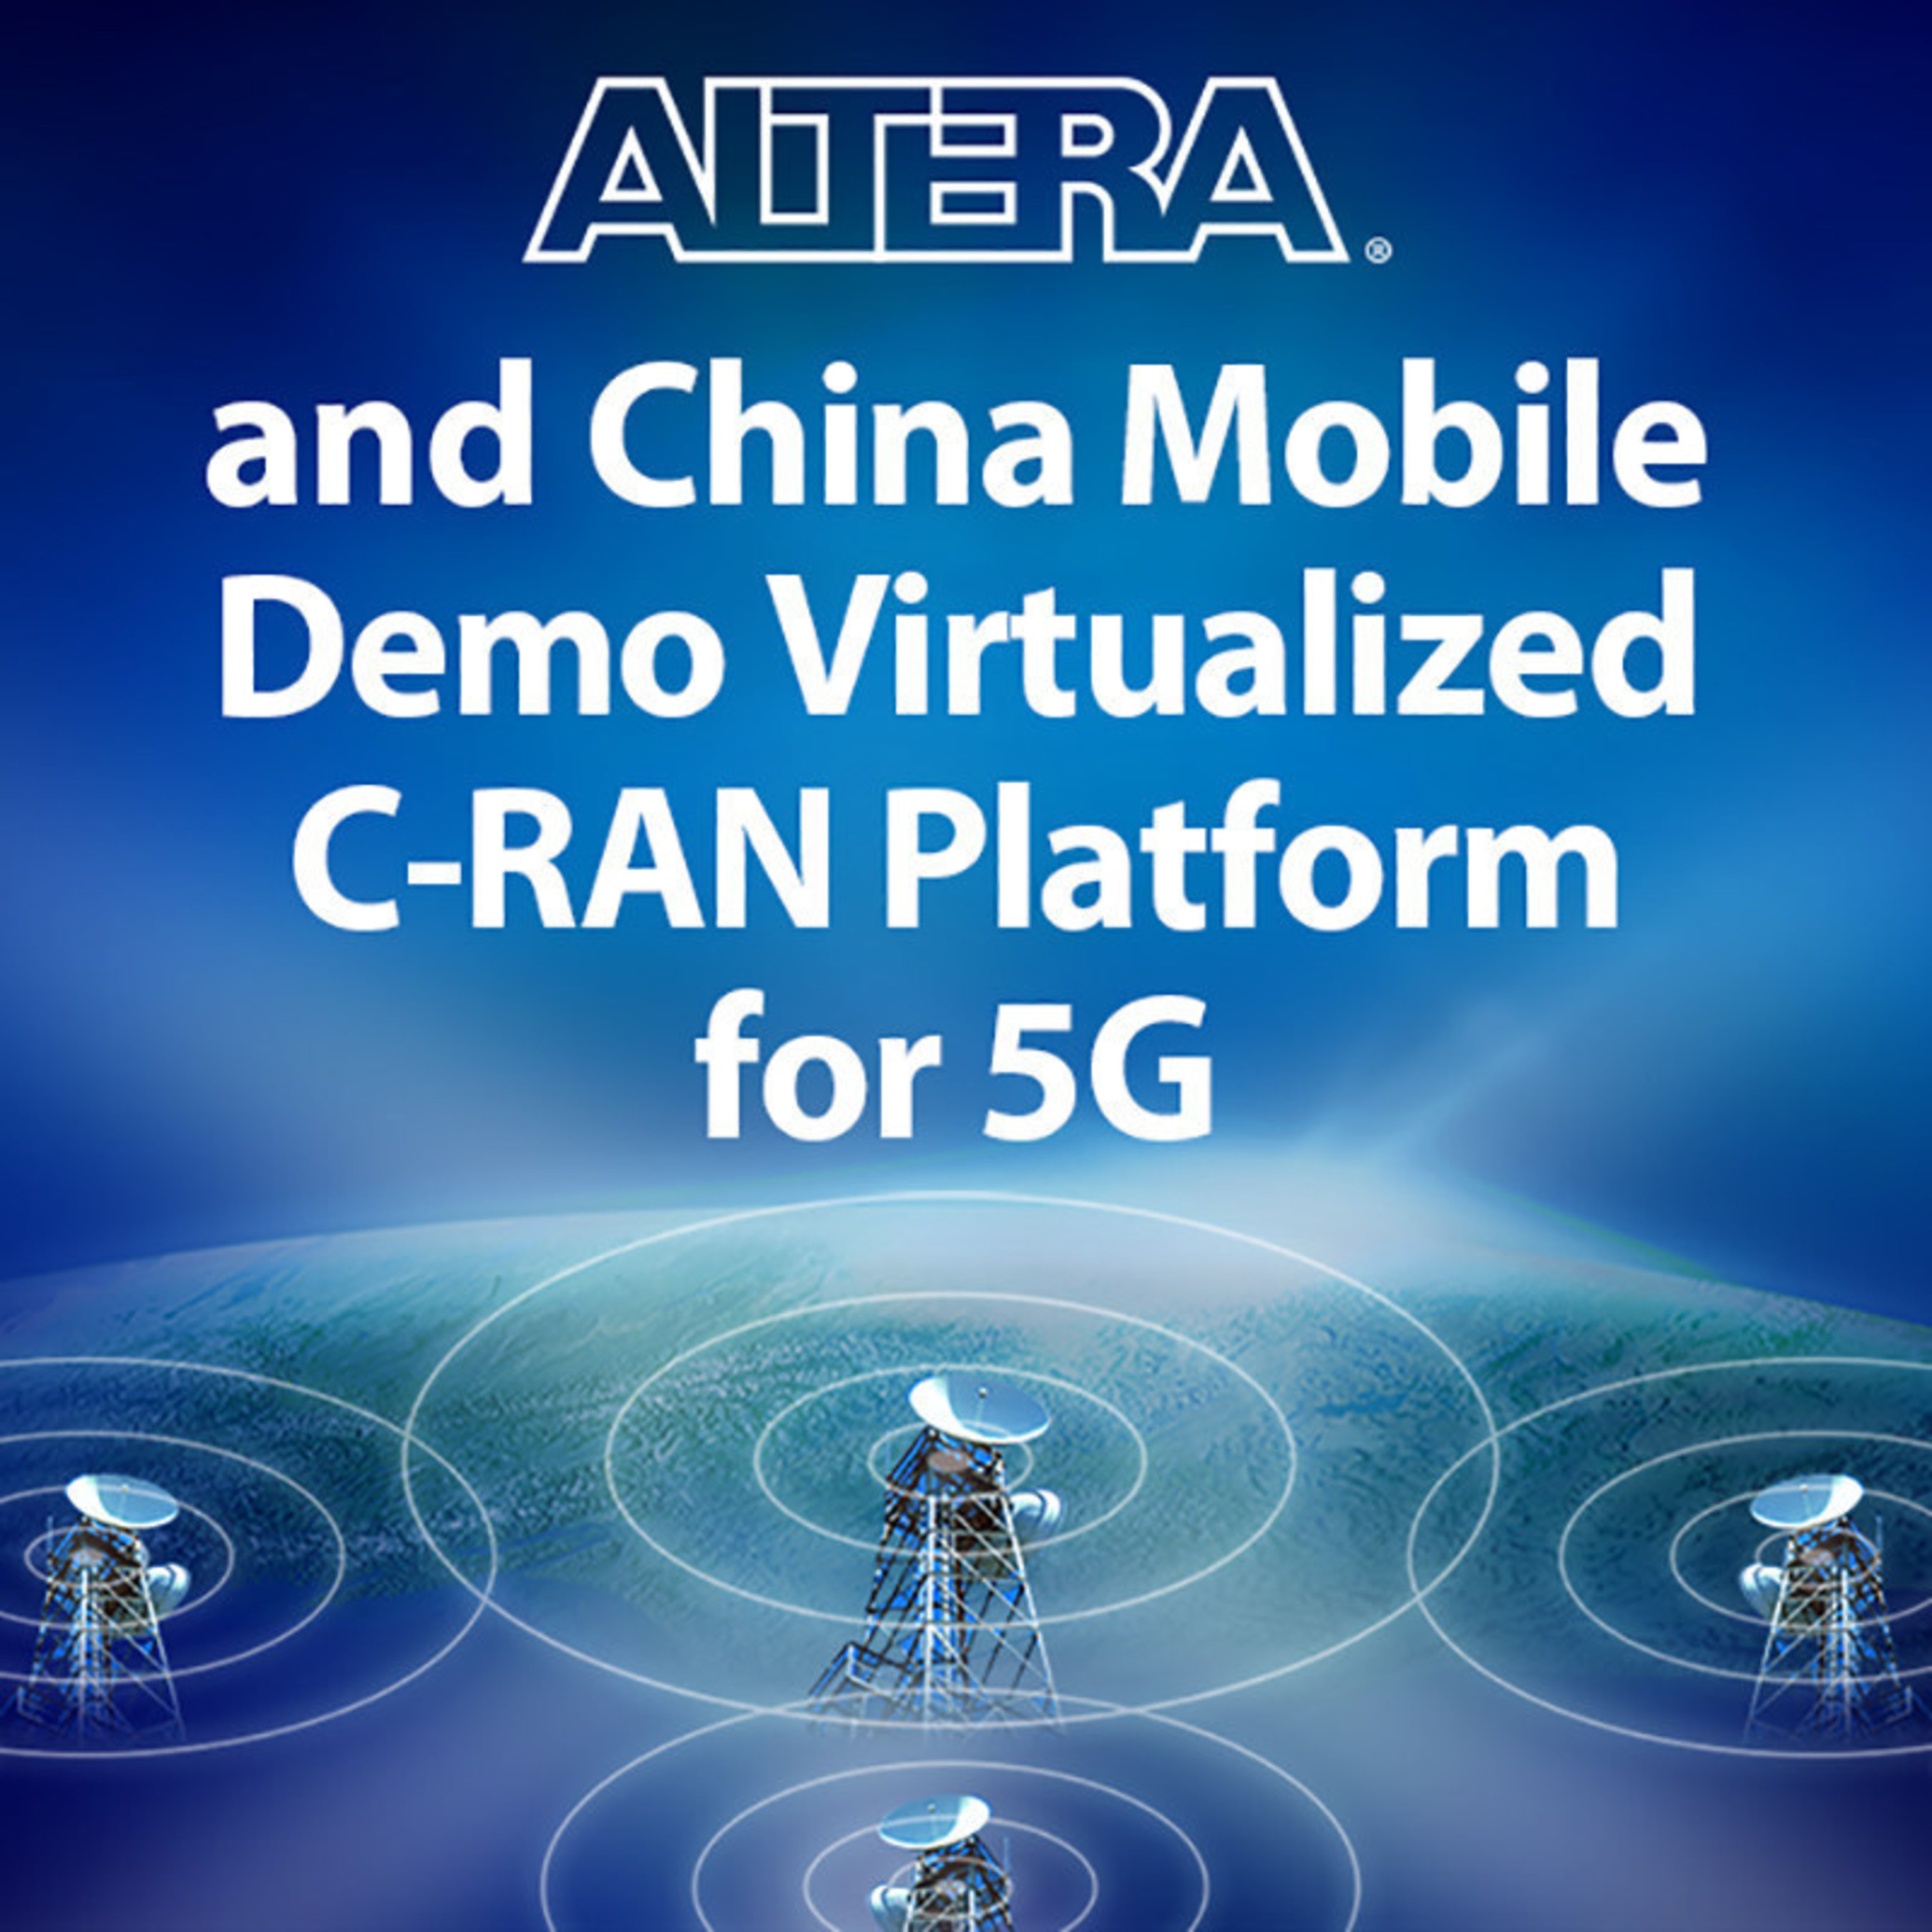 Altera and China Mobile Demonstrate Virtualized C-RAN Platform for 5G at Mobile World Congress 2015